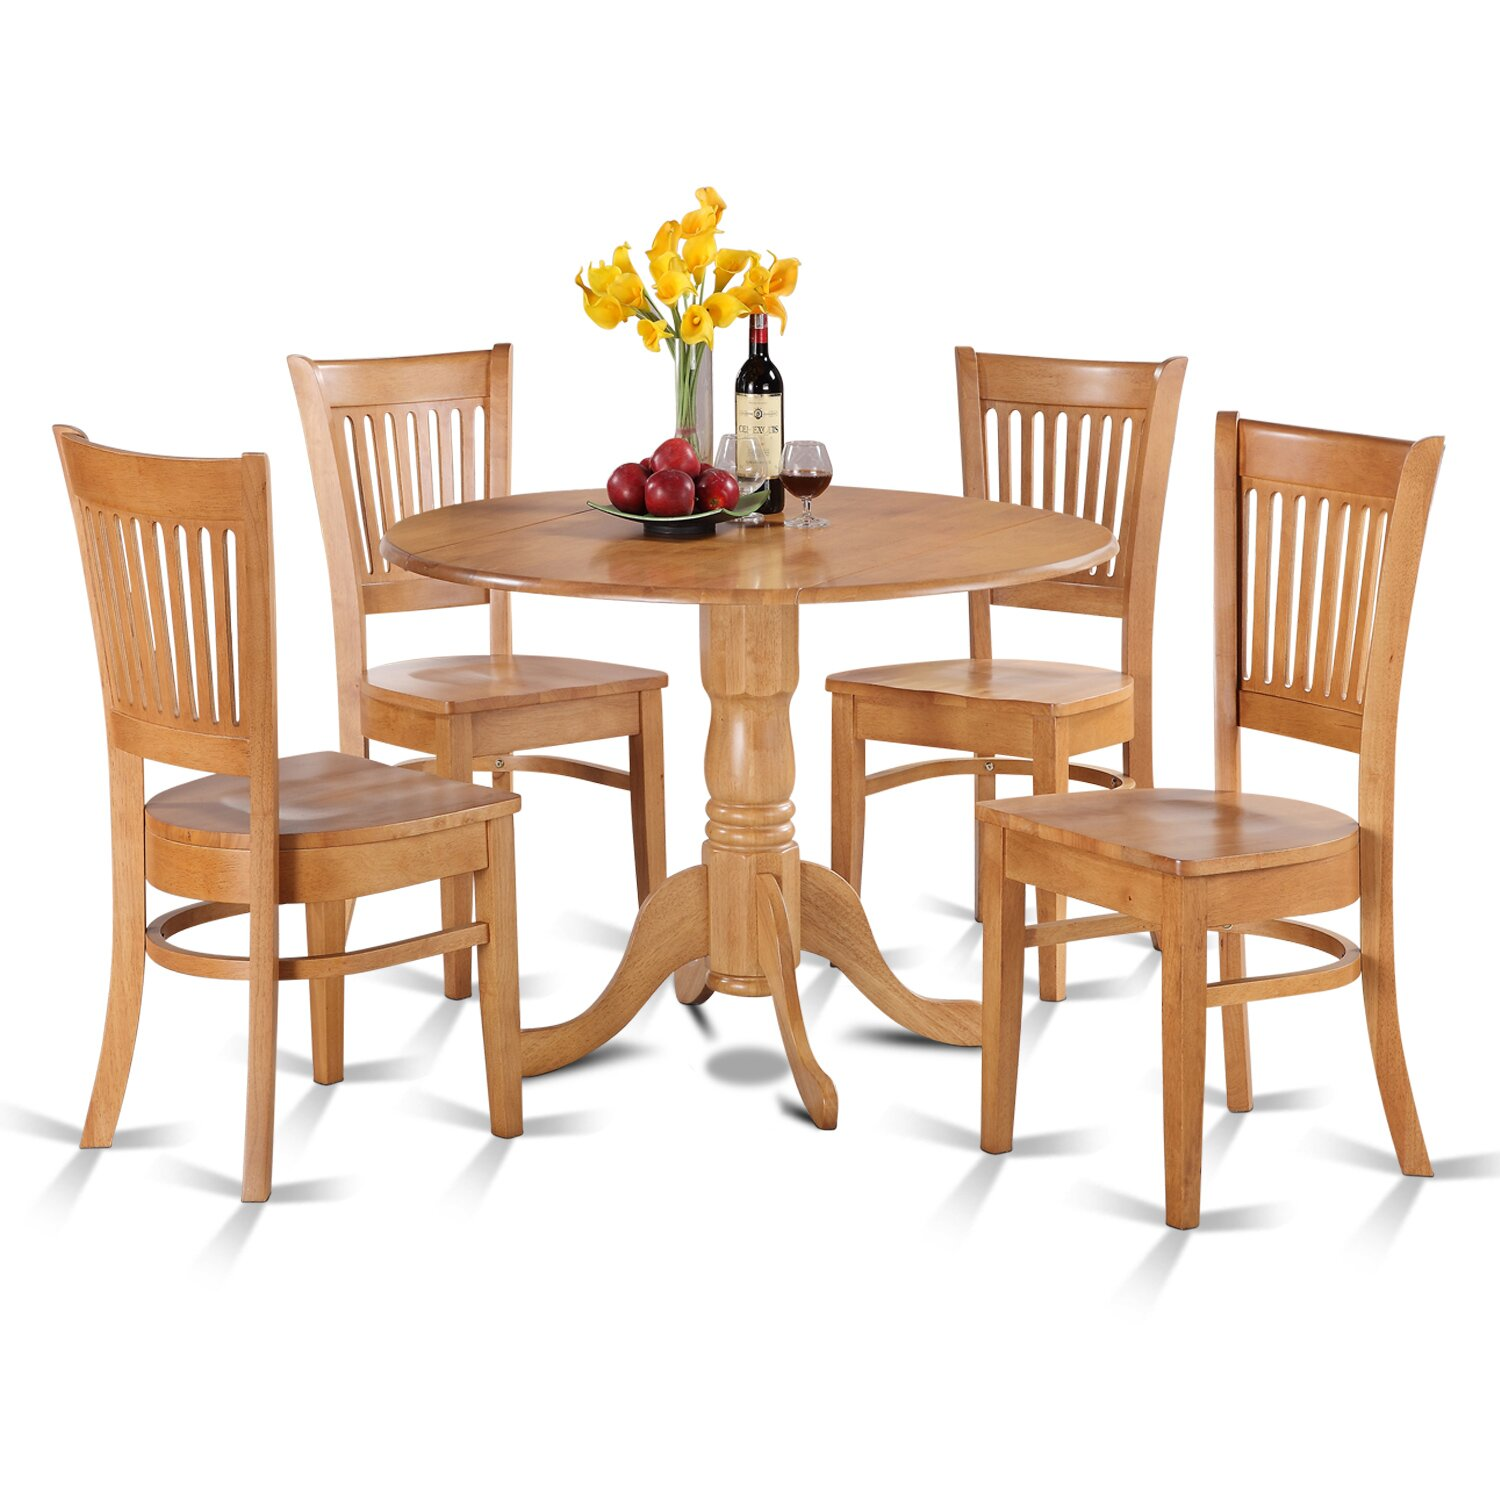 East west dublin 5 piece dining set reviews wayfair for Kitchen set new leaf